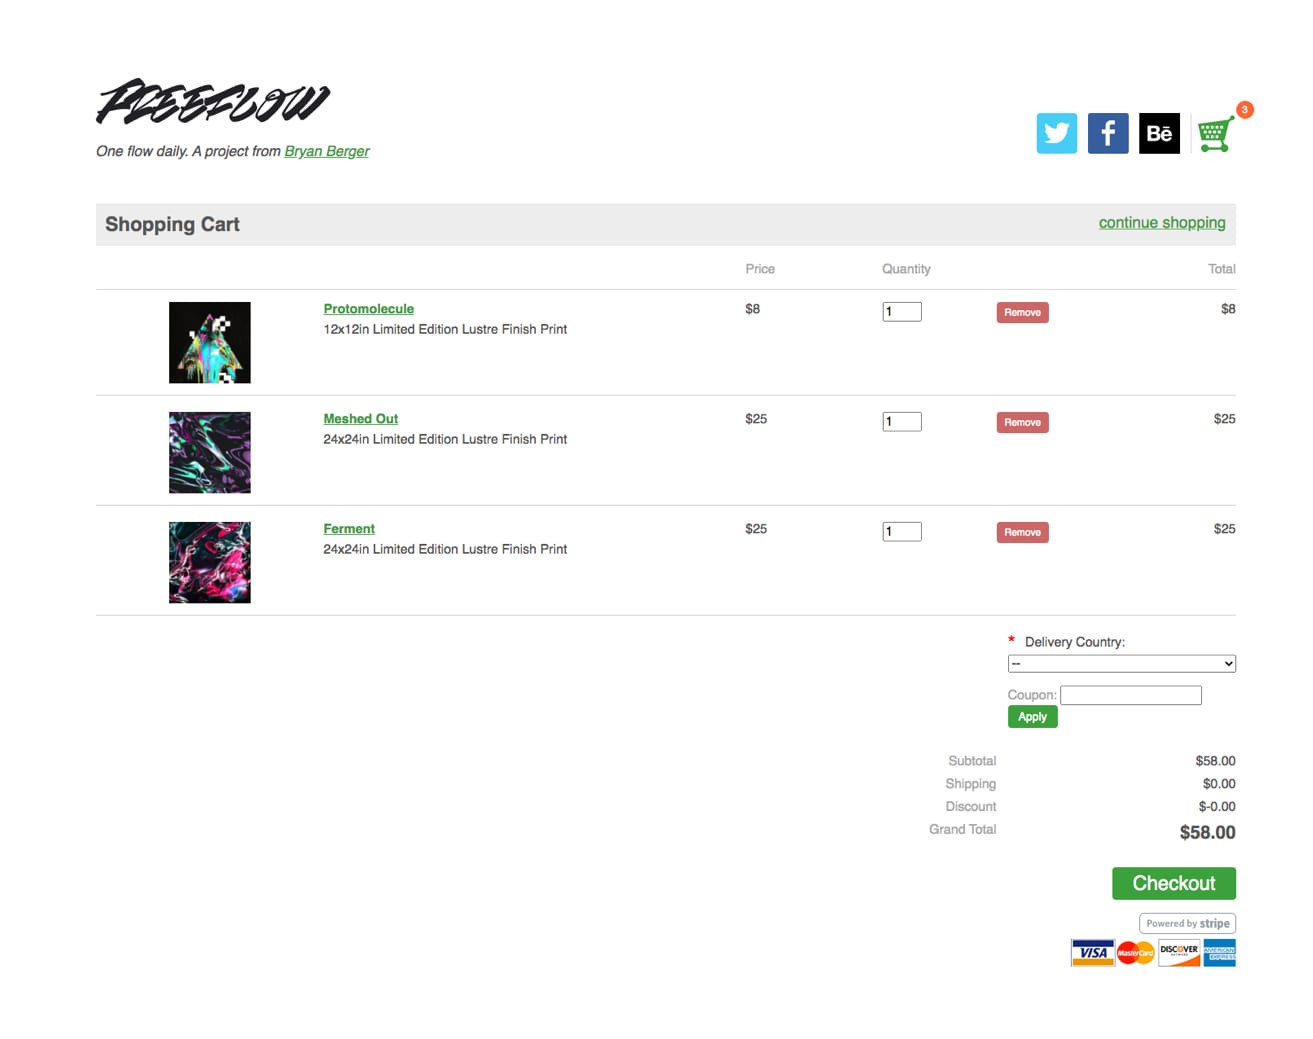 Shop Checkout Page